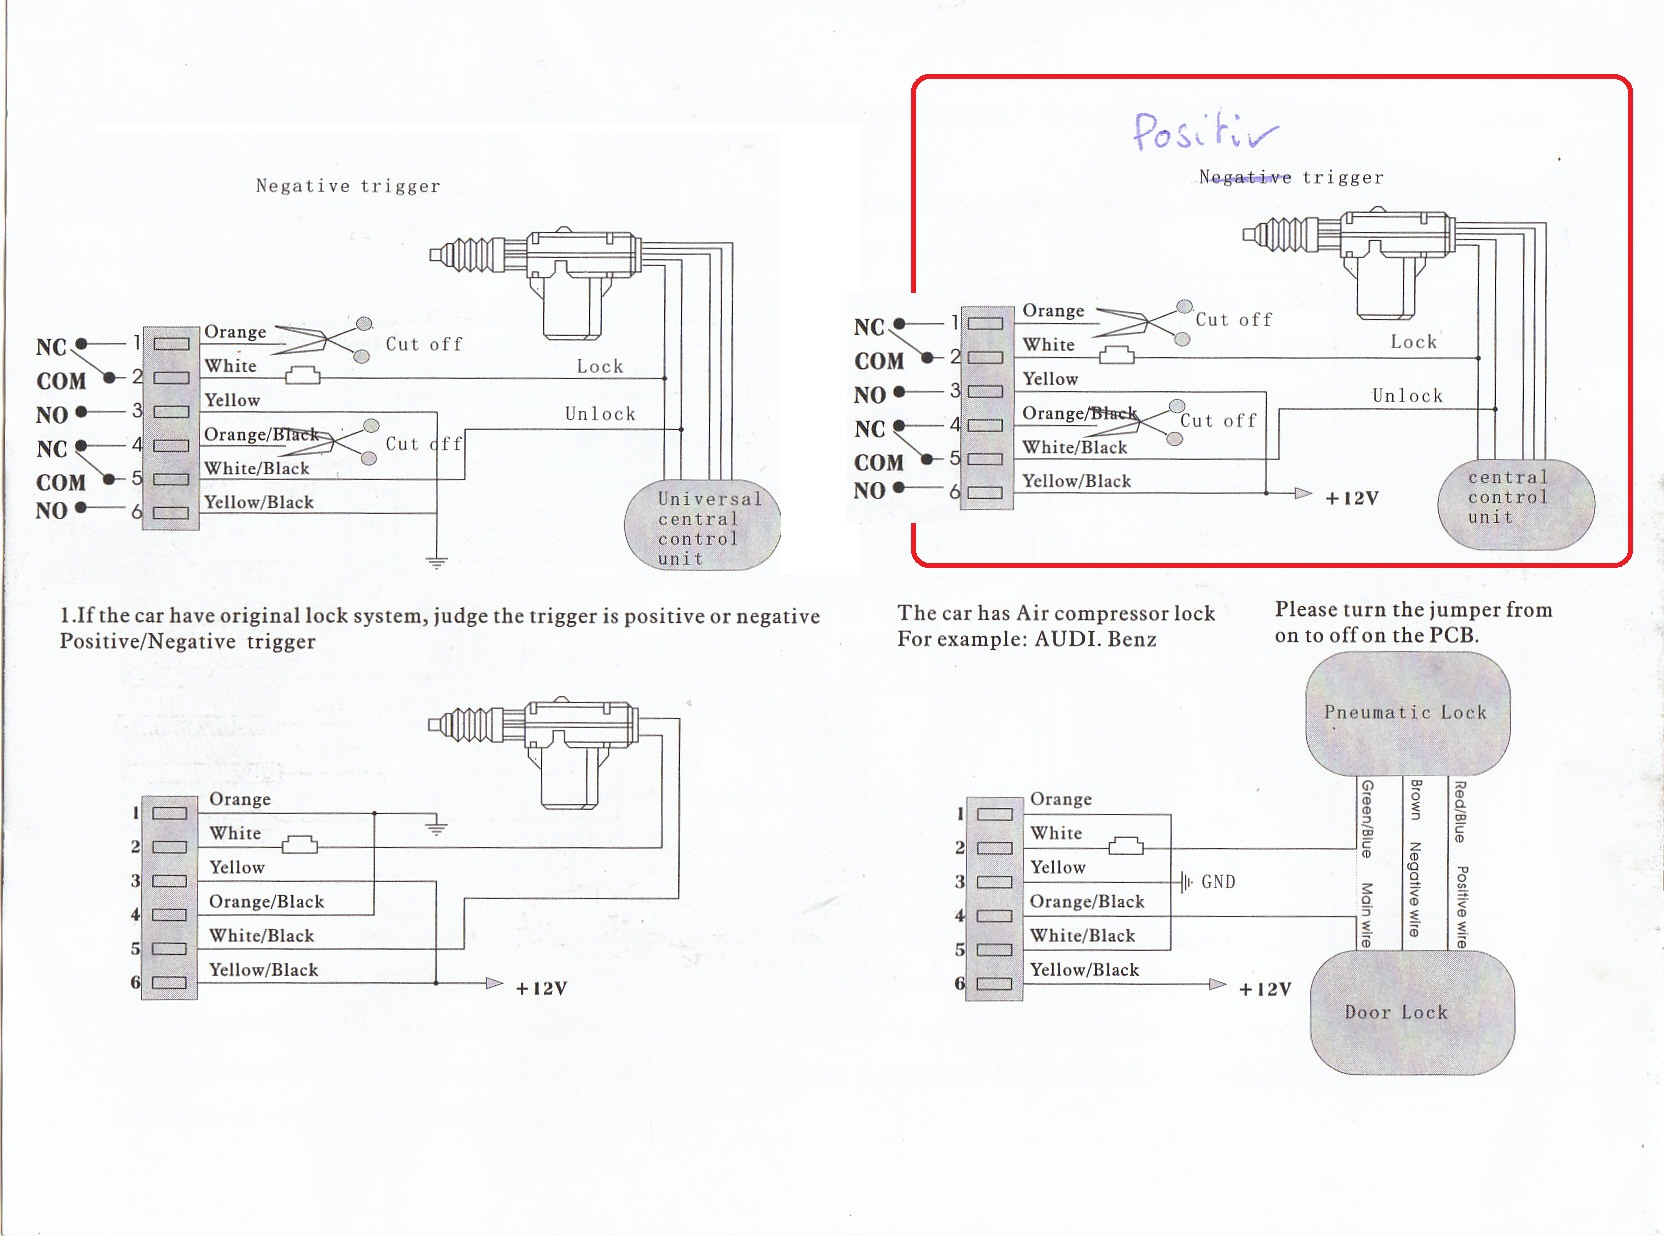 Keyless Entry On Early 928 Rennlist Porsche Discussion Forums 944 Fuse Box Dia However I Could Not Detect The Correct Wiring Even With Added Scheme